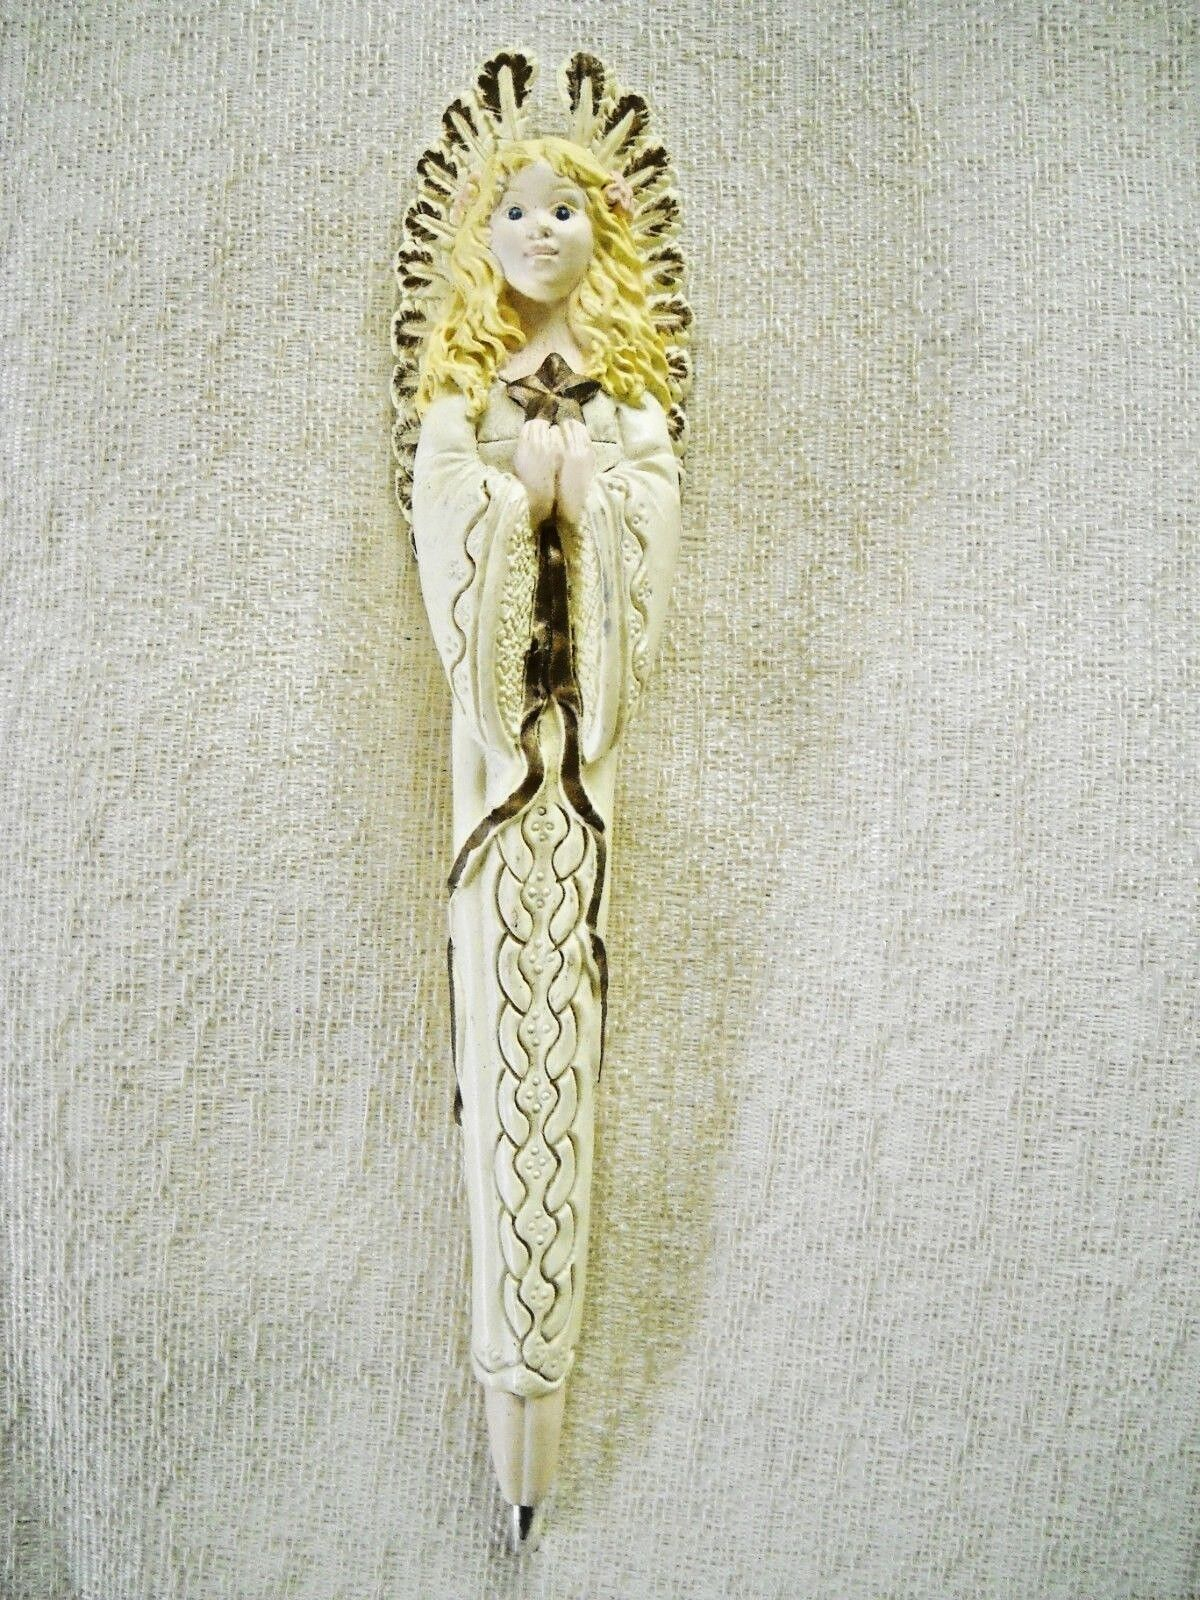 VINTAGE RESIN VICTORIAN ANGEL PEN W/PROTECTIVE POINT GUARD ON TIP STILL WRITES  - $7.00